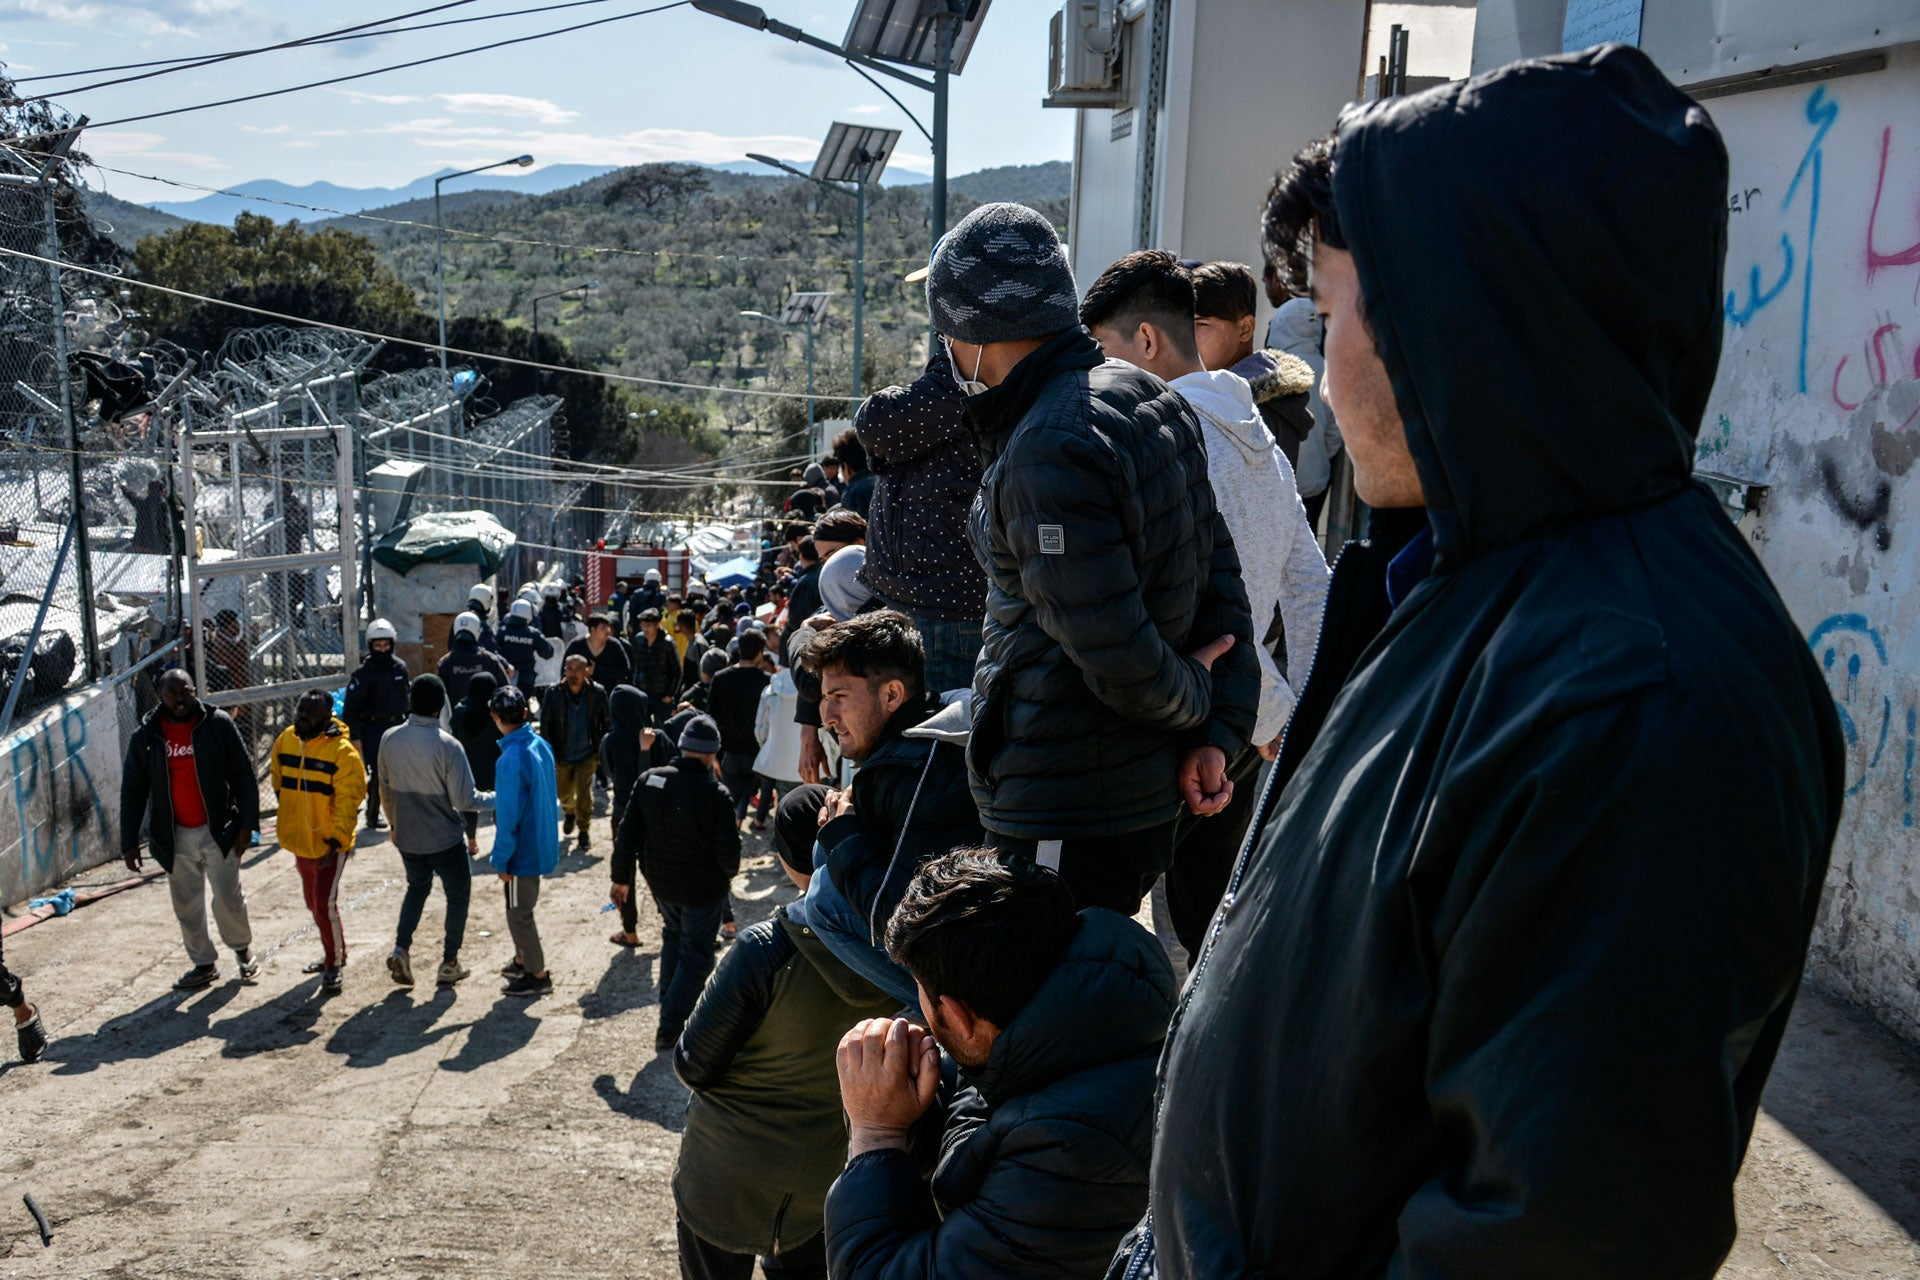 Migrants gather as riot police guard a gate in Moria refugee camp on the northeastern Aegean island of Lesbos, Greece, March 16, 2020.